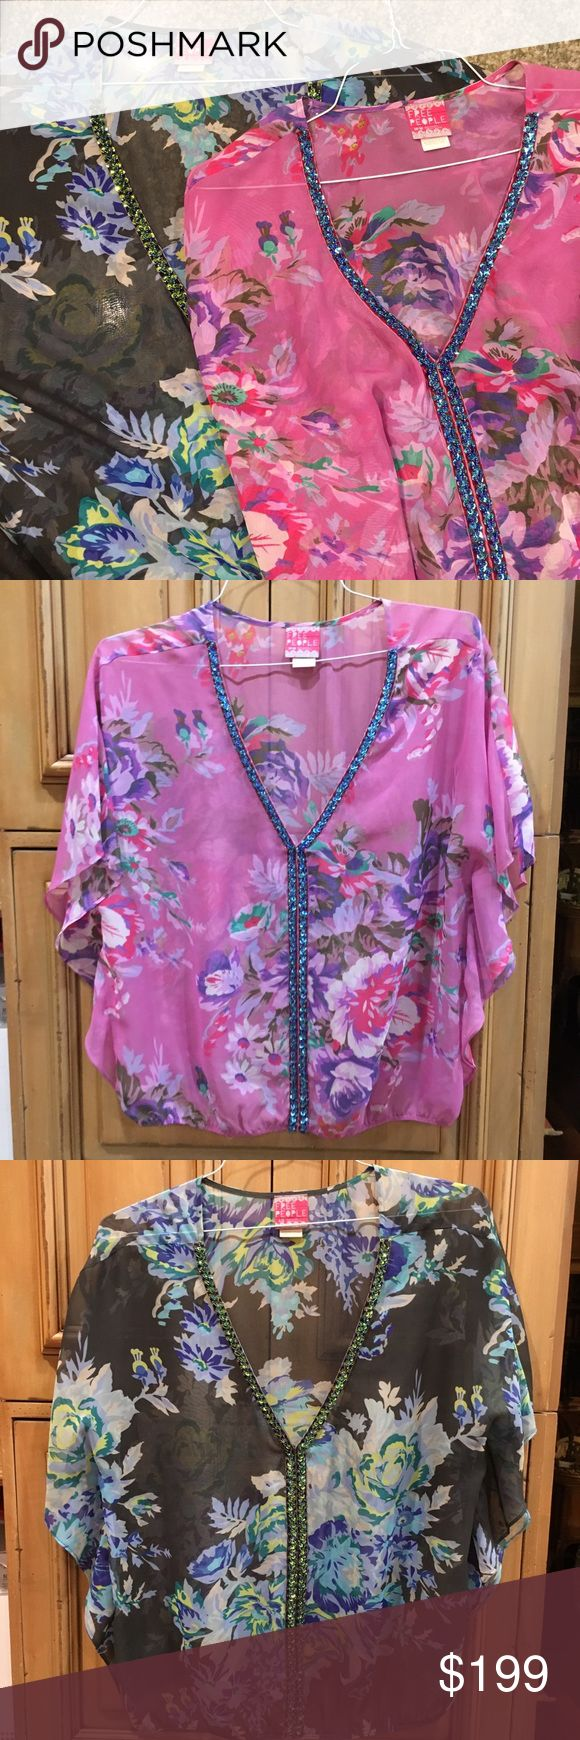 LOT OF 2 Free People Sheer Genius Floral Tops M L Please note there are signs of wear in the seams under the arm pit. Both tops are pulled open. This listing is for 2 tops. The blue is a size large. The pink is a size medium. Flowy fit delicate print top with velvet and sequins detail. Batwing fit. Purchased for $188 each from Free People. LOT CAN BE SPLIT UPON REQUEST. Free People Tops Blouses